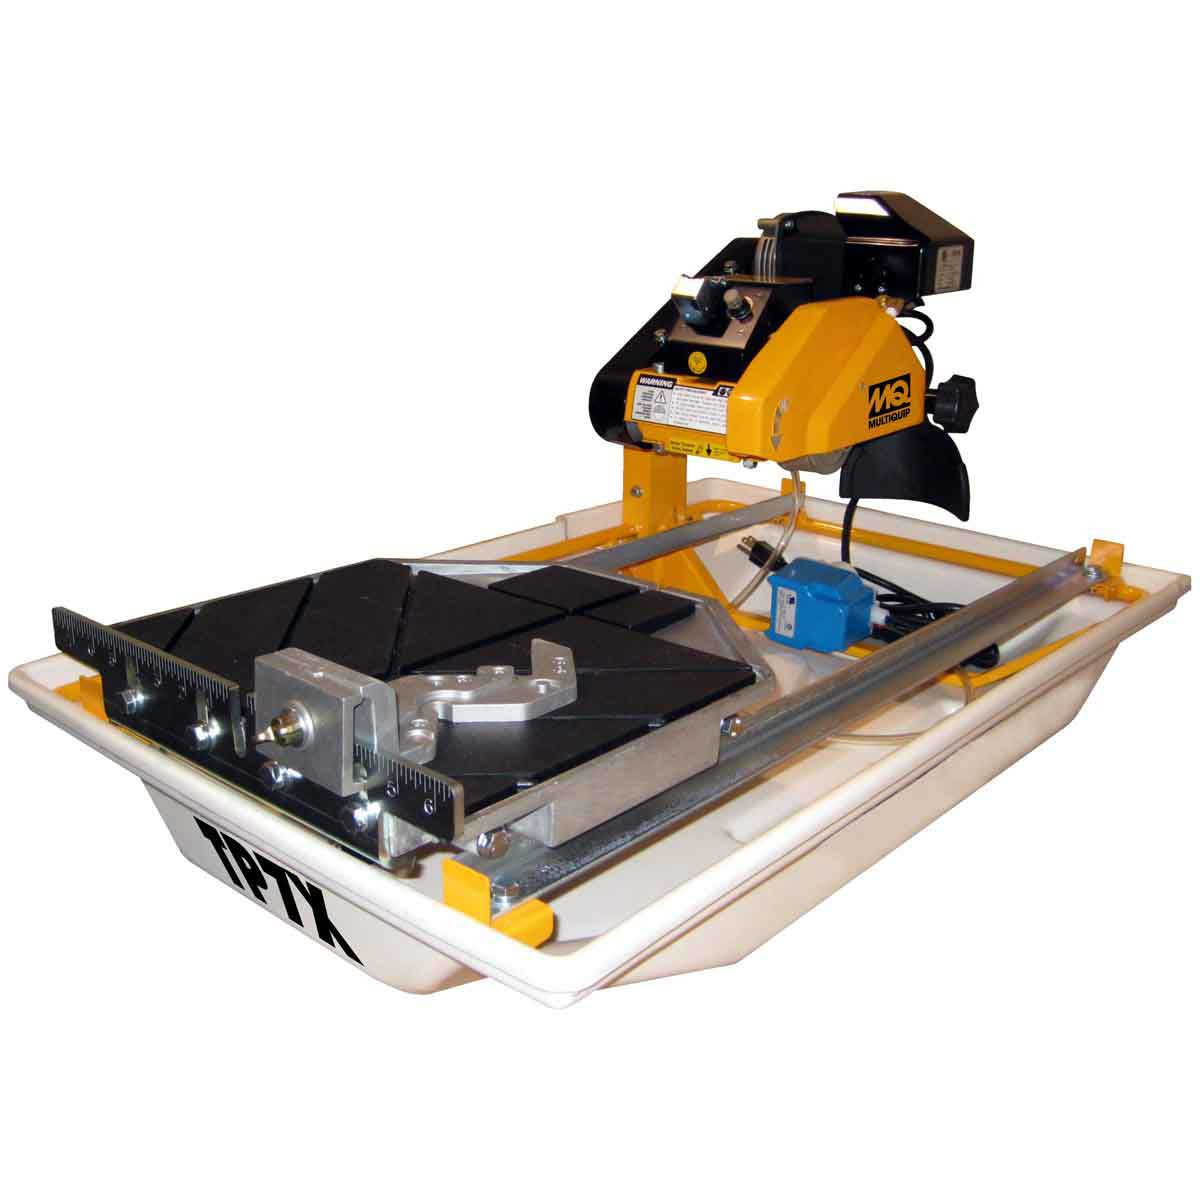 ... Office besides Ridgid 7 Tile Saw Review. on home depot lifetime table